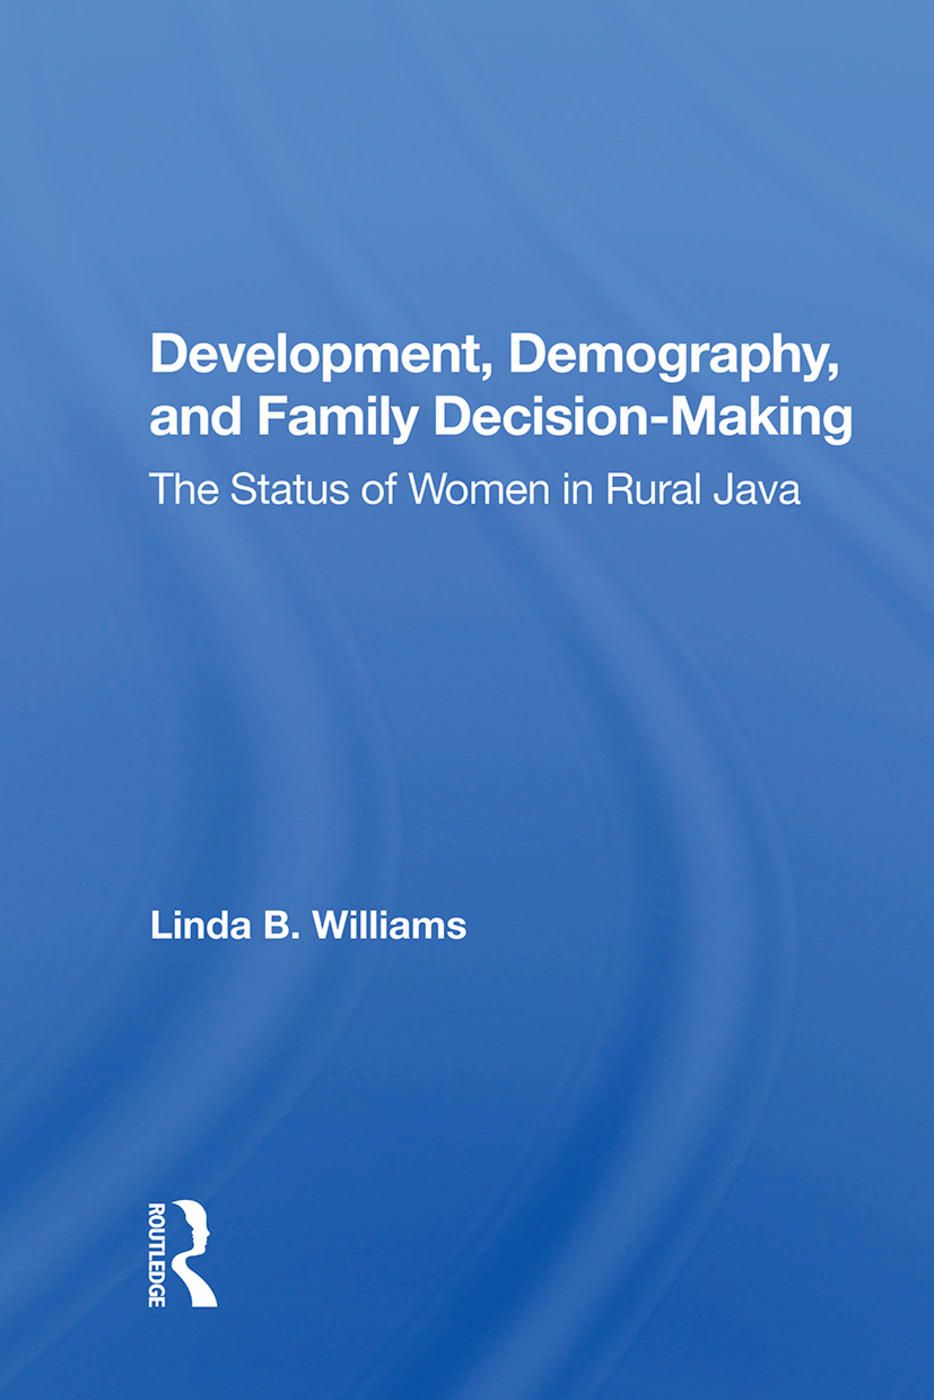 Development, Demography, and Family Decision-Making